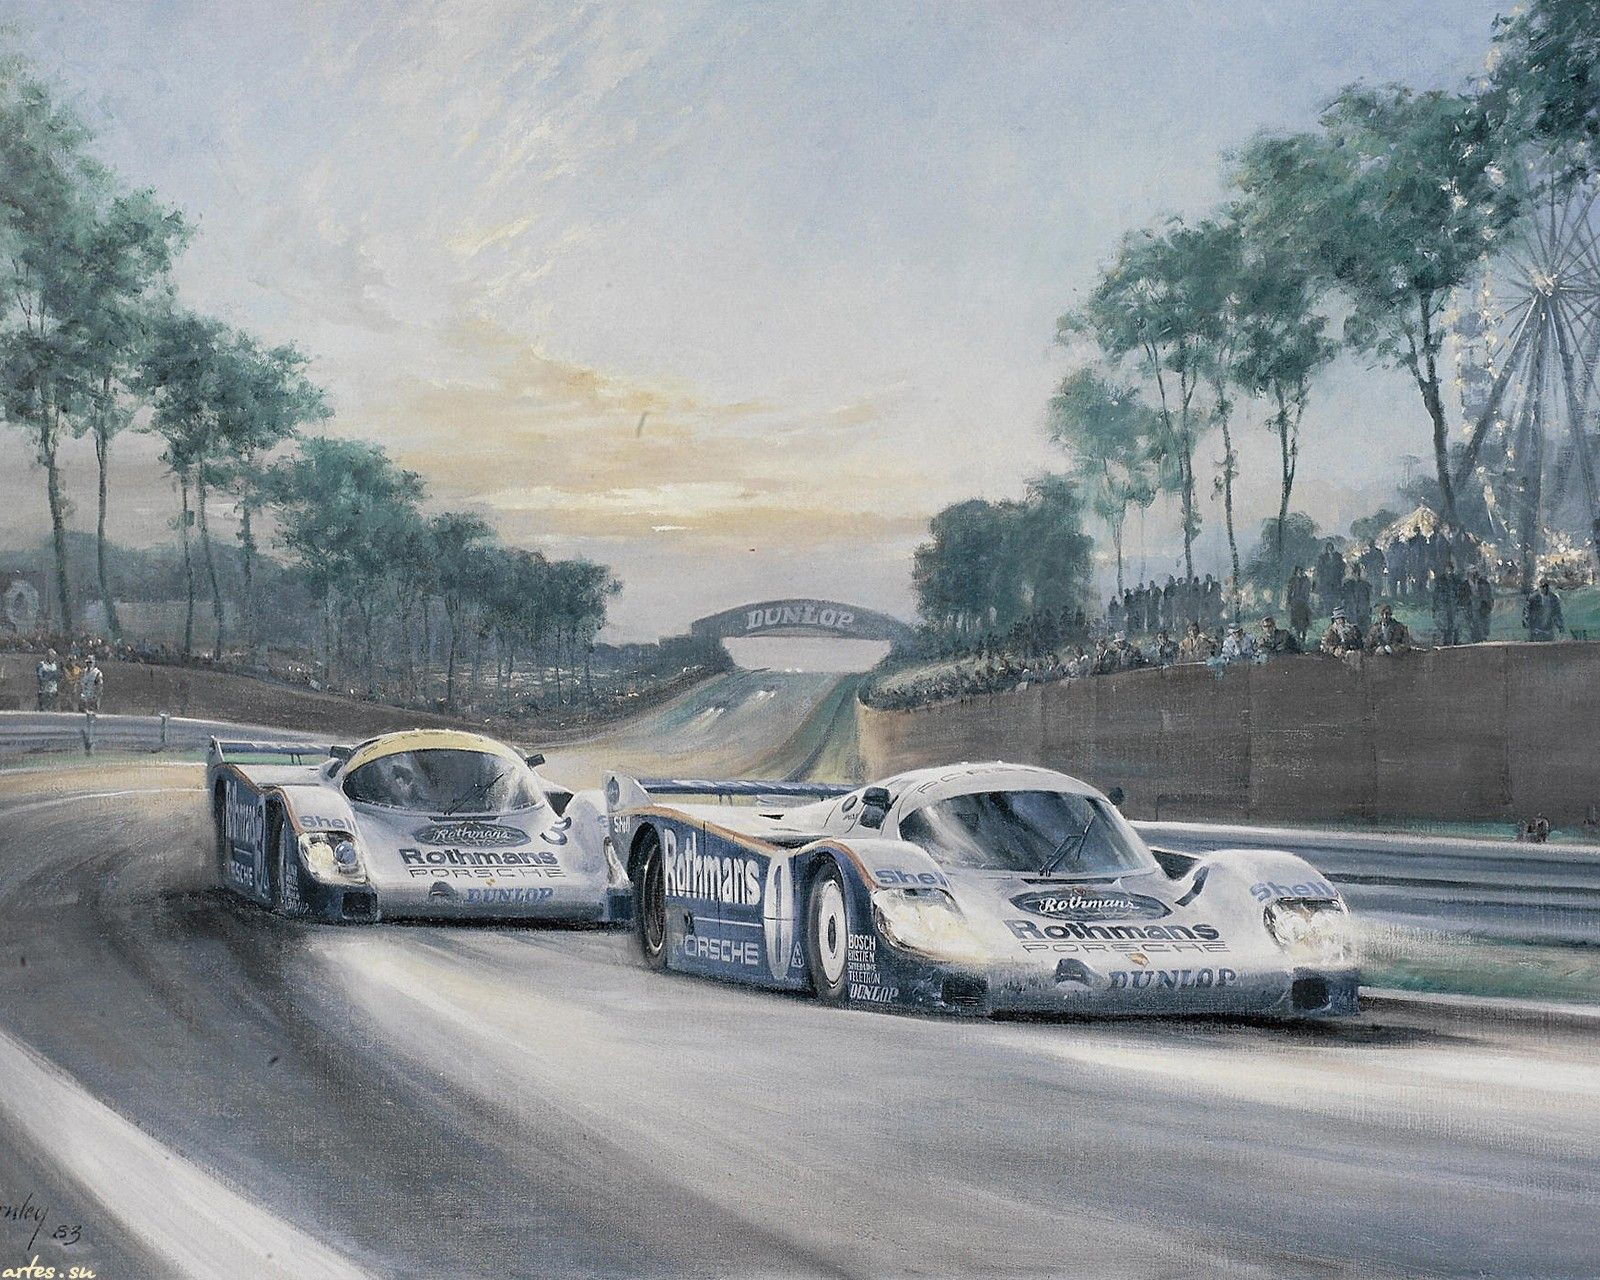 coches de carreras descargar wallpaper alan fearnley puesta del sol en le mans 1600x1200. Black Bedroom Furniture Sets. Home Design Ideas